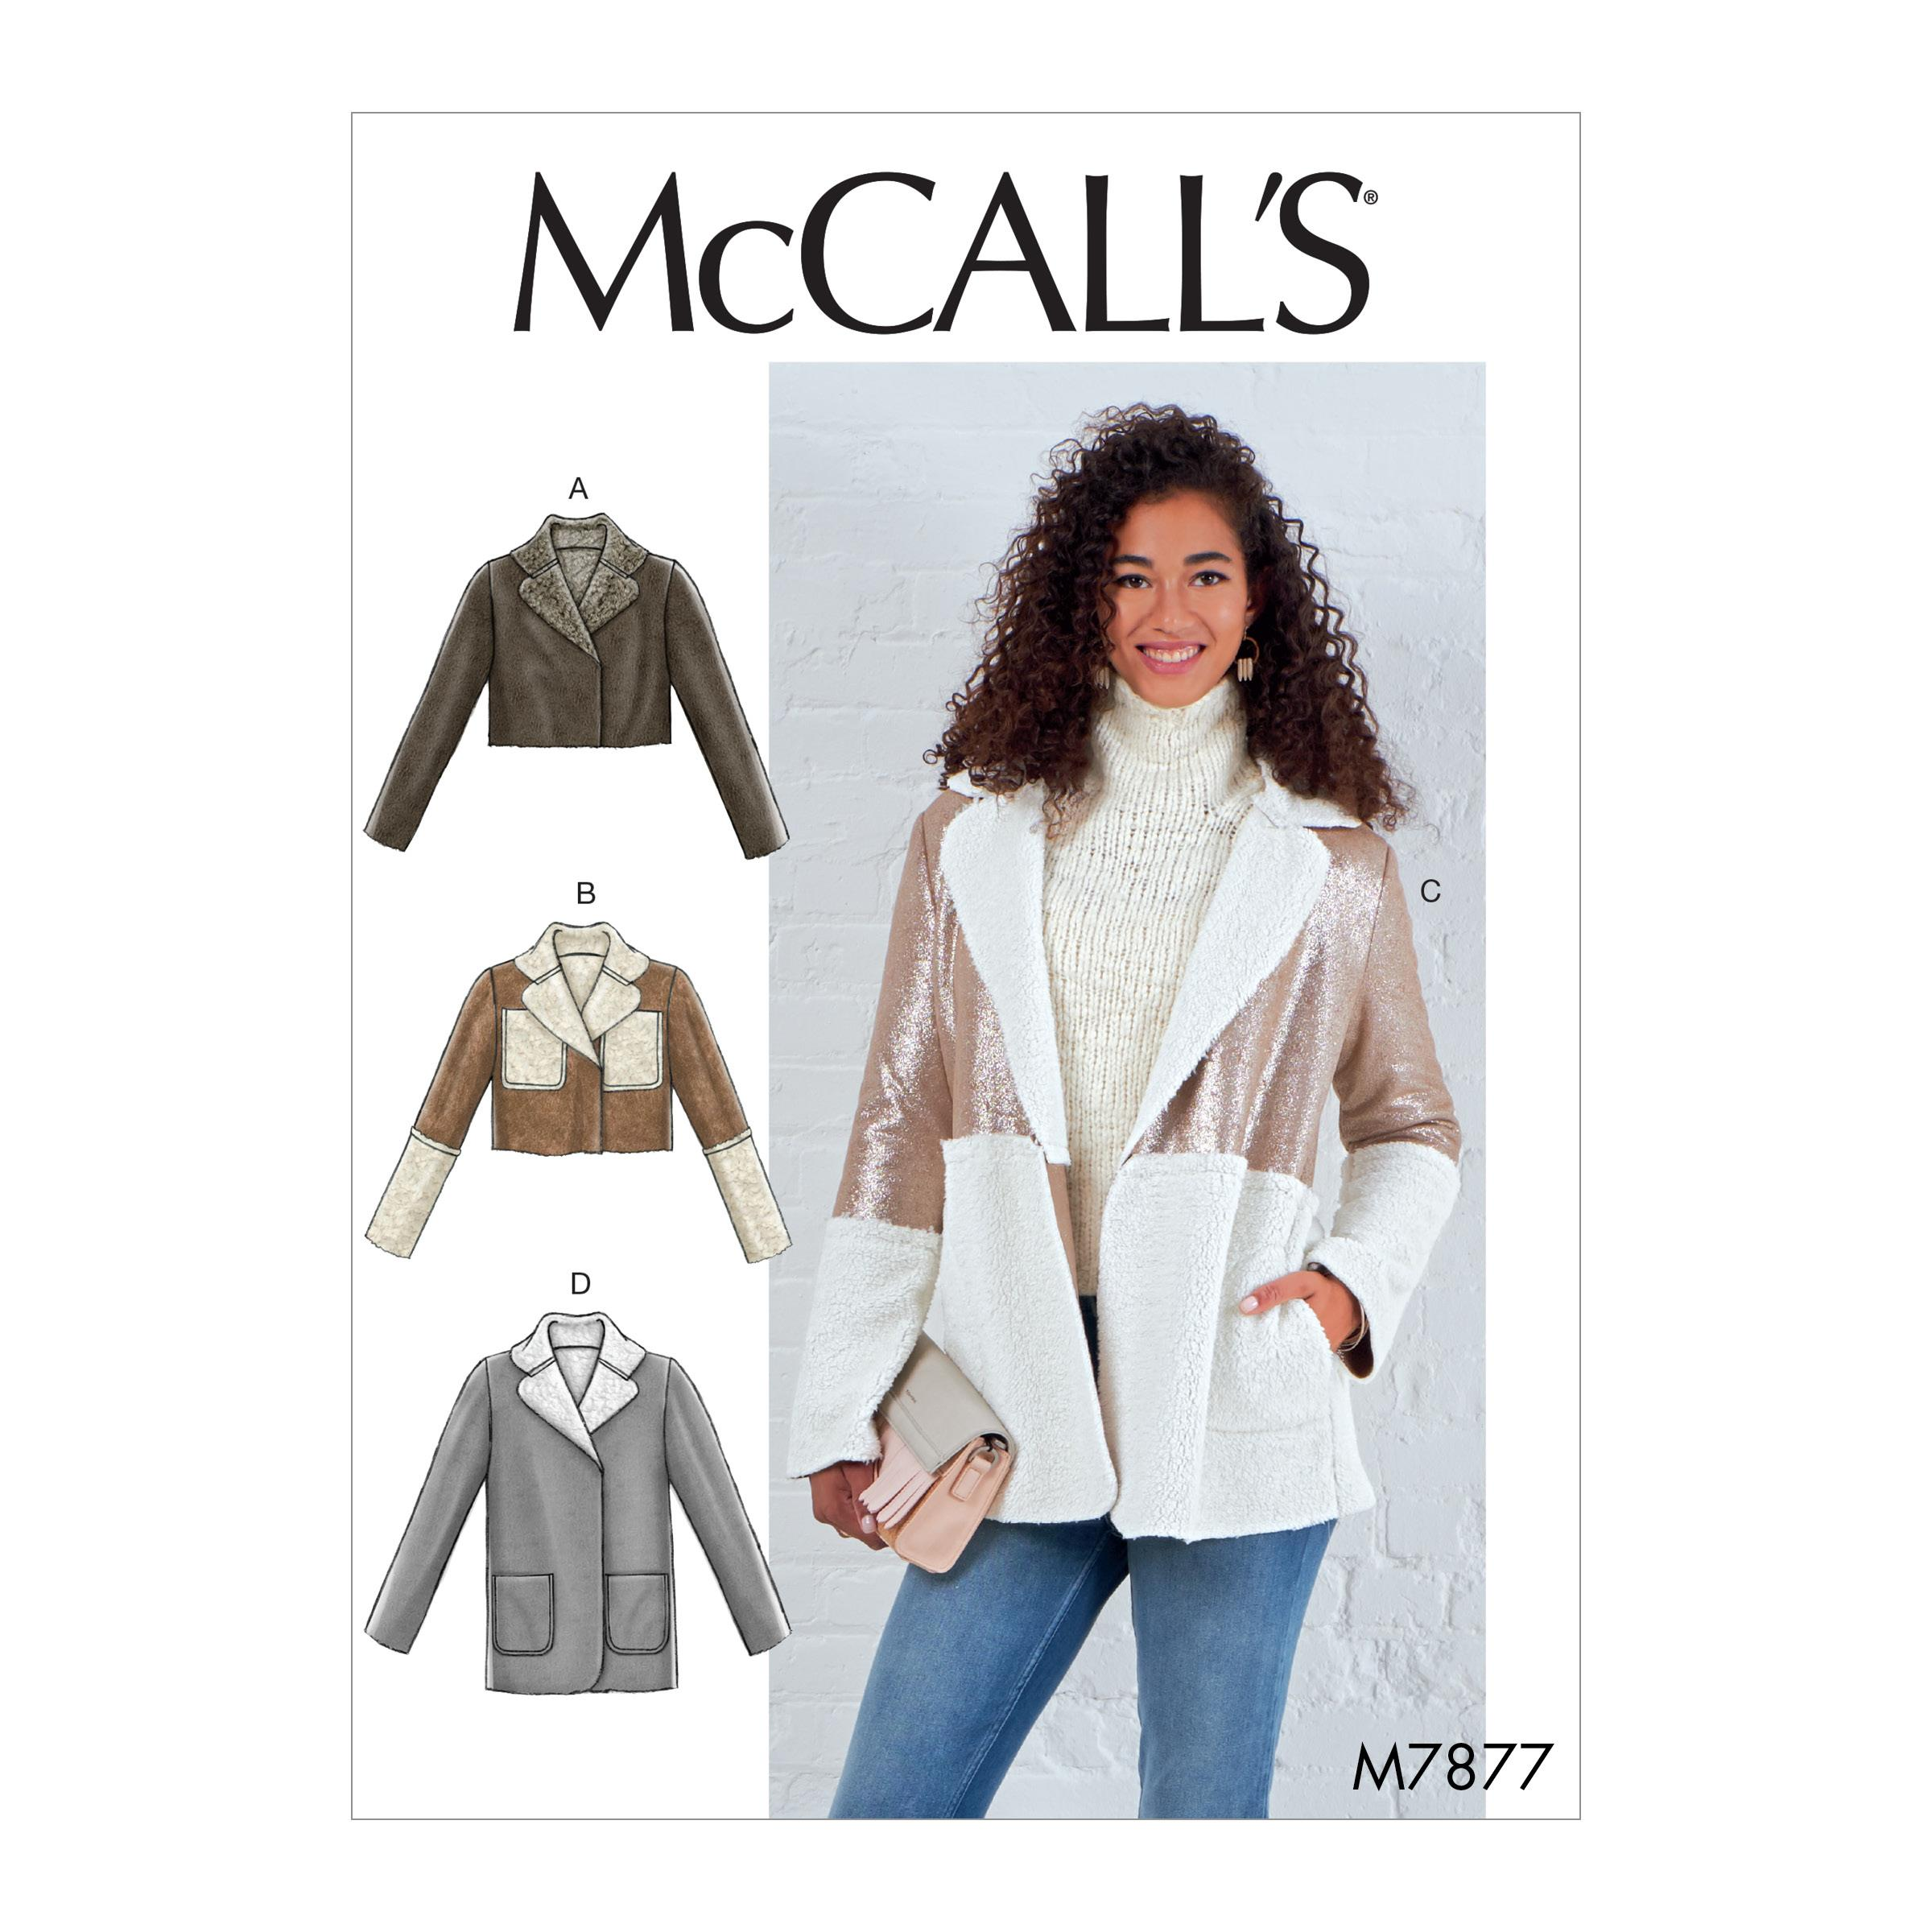 McCalls M7877 Misses Jackets & Vests